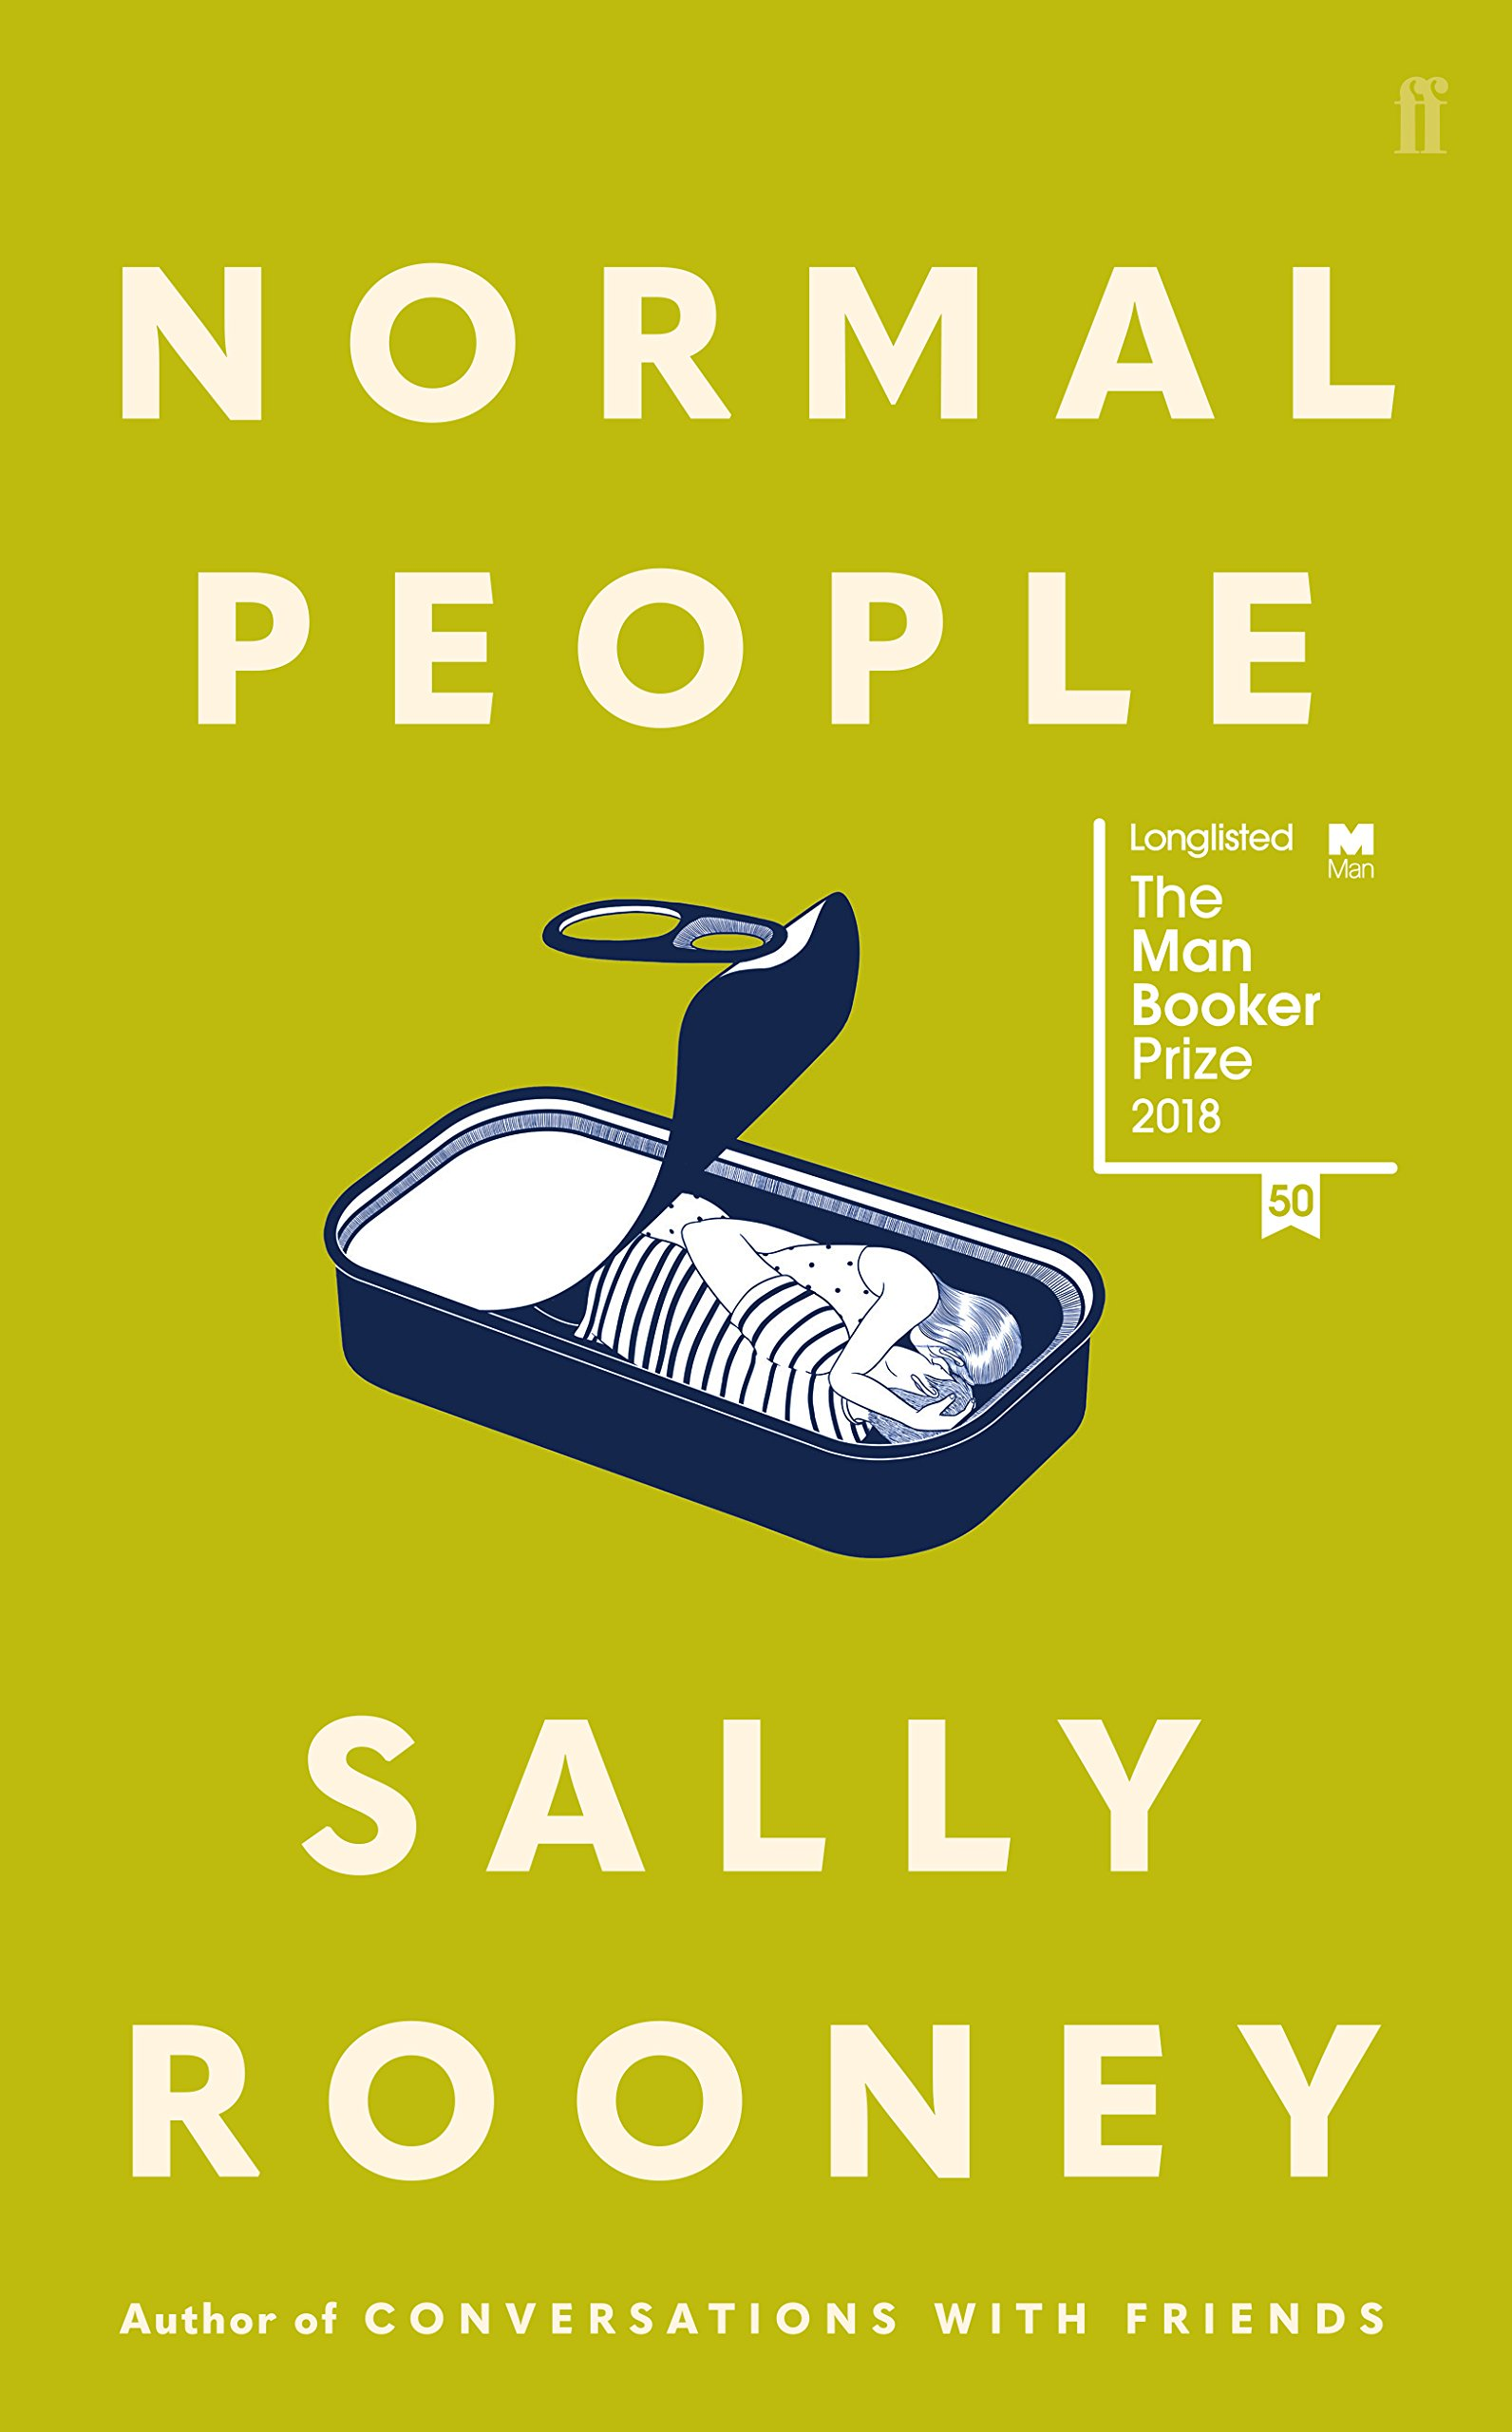 Normal People by Sally Rooney - Bad on Paper Podcast Book of the MonthRating: 1/5After a lot of Googling I've determined that people either love or hate this book. I am in the latter group. Normal People follows the high school and college relationship between Marianne and Connel. Marianne is weird and has not friends and Connel is the popular jock. Their only commonality is their love of learning and they spent most of their time together discussing and debating politics. This friendship eventually turns into a secret relationship because Connel is too embarrassed to let his friends know that he is dating Marianne. After a rocky final year they break up and don't see each other until they both are attending Trinity College in Dublin. This time Marianne is popular and Connel is the loner. They become friends again and fall back into an on and off again romantic relationship. So far the book doesn't sound bad, right? Well throughout all this you read about Marianne's desire to be hit during sex (her father was abusive) and Connel's escalating depression. They both feel most like themselves with the other but their personal baggages always get in the way and to me it came off as very toxic because neither of them every tried to help the other out of their struggles. Normal People was long listed for the Man Booker Prize, is being hailed as an Irish classic, and is supposedly being turned into a Hulu series. These accolades are super confusing to me but hey, you can't love every book, even critically acclaimed ones. Oh by the way, there are absolutely NO QUOTATIONS to denote dialogue, so get ready for a serious mind-battle and a possible headache.Is it a must read? To me, no. But if you love highly praised literary fiction, then it might be worth a read.